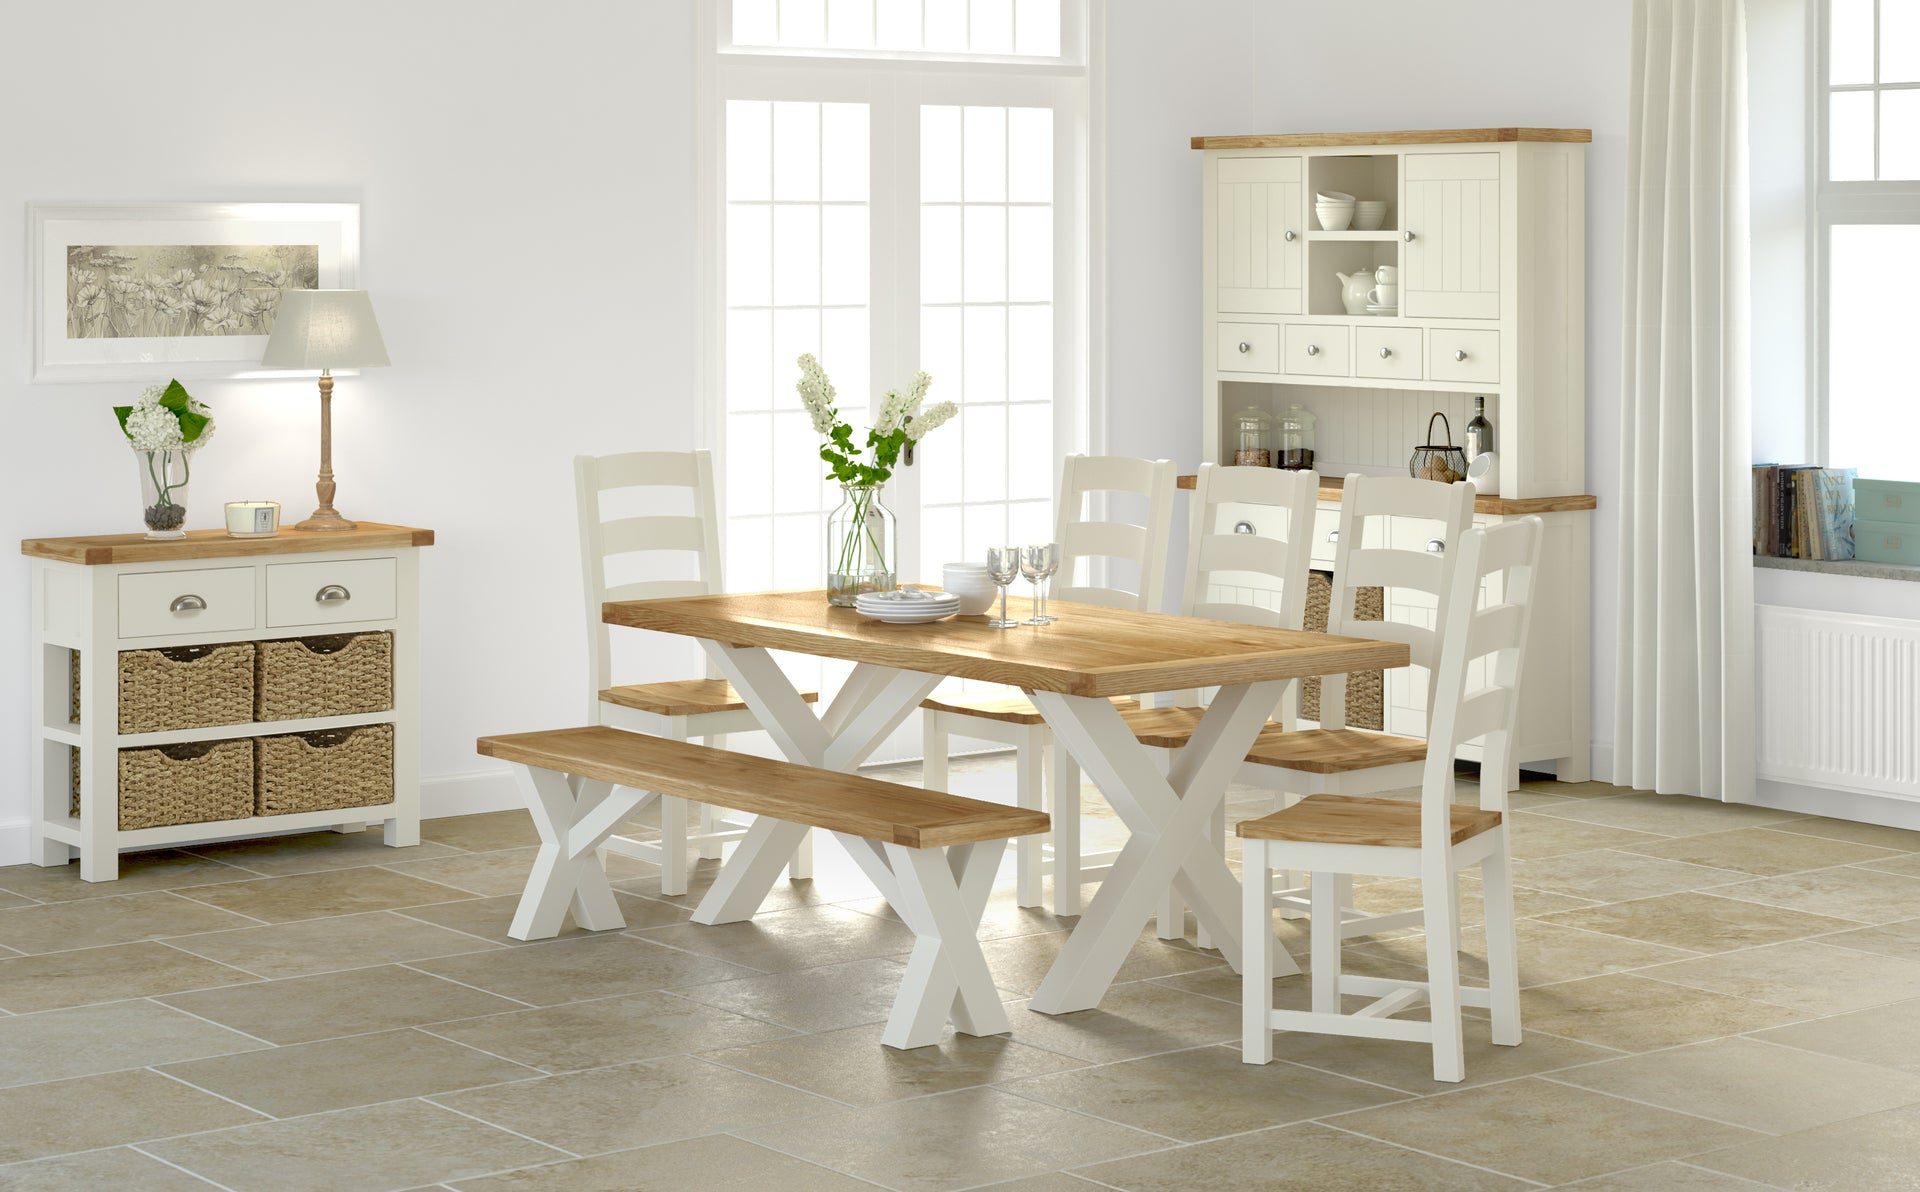 Seveille Off White Dining Chair Fabric Seat Pad